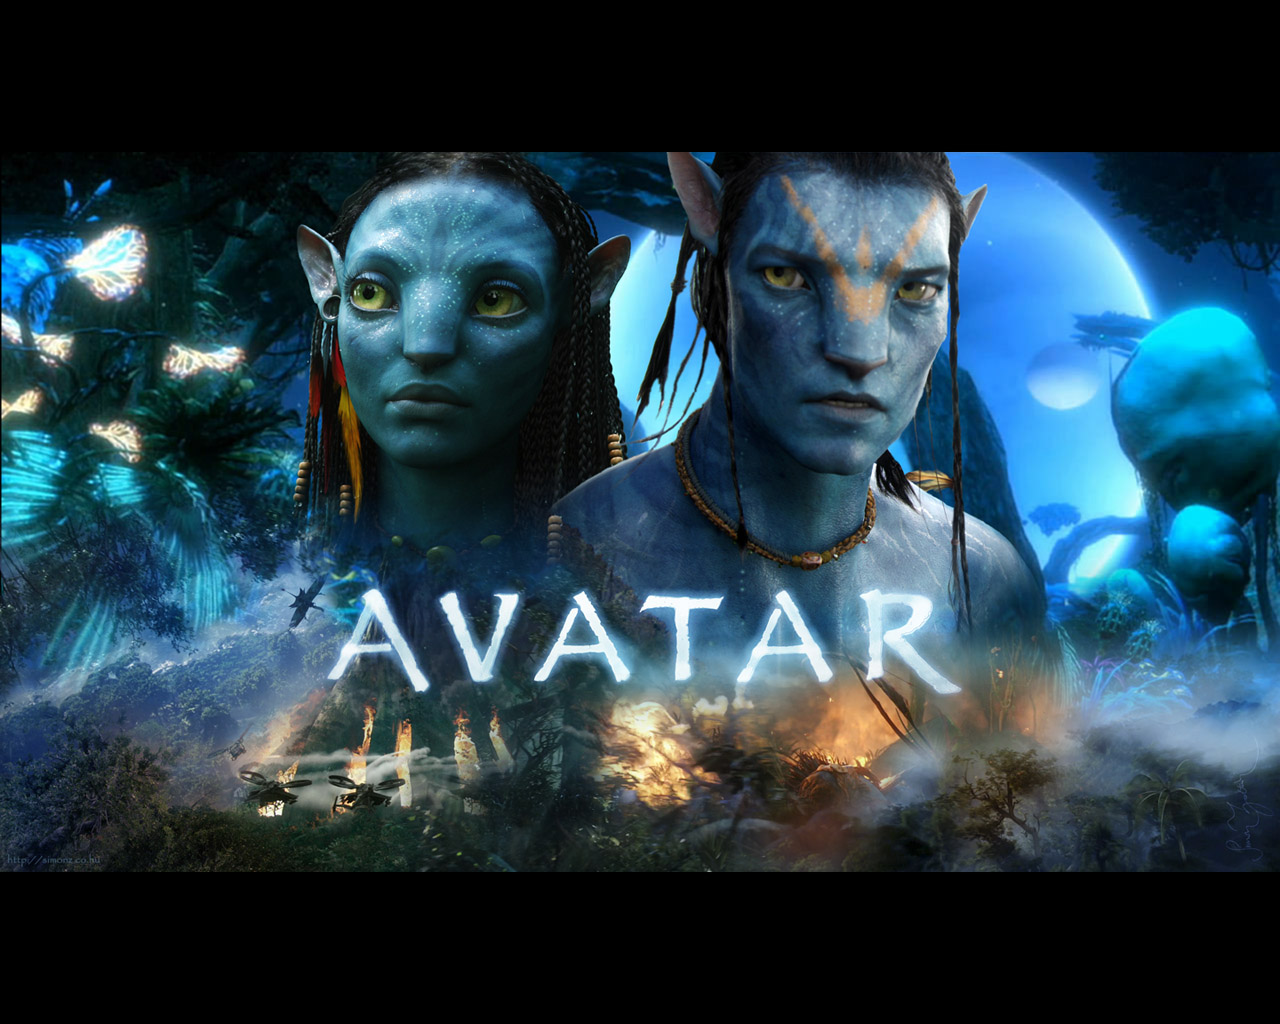 Avatar a constantly racing mind